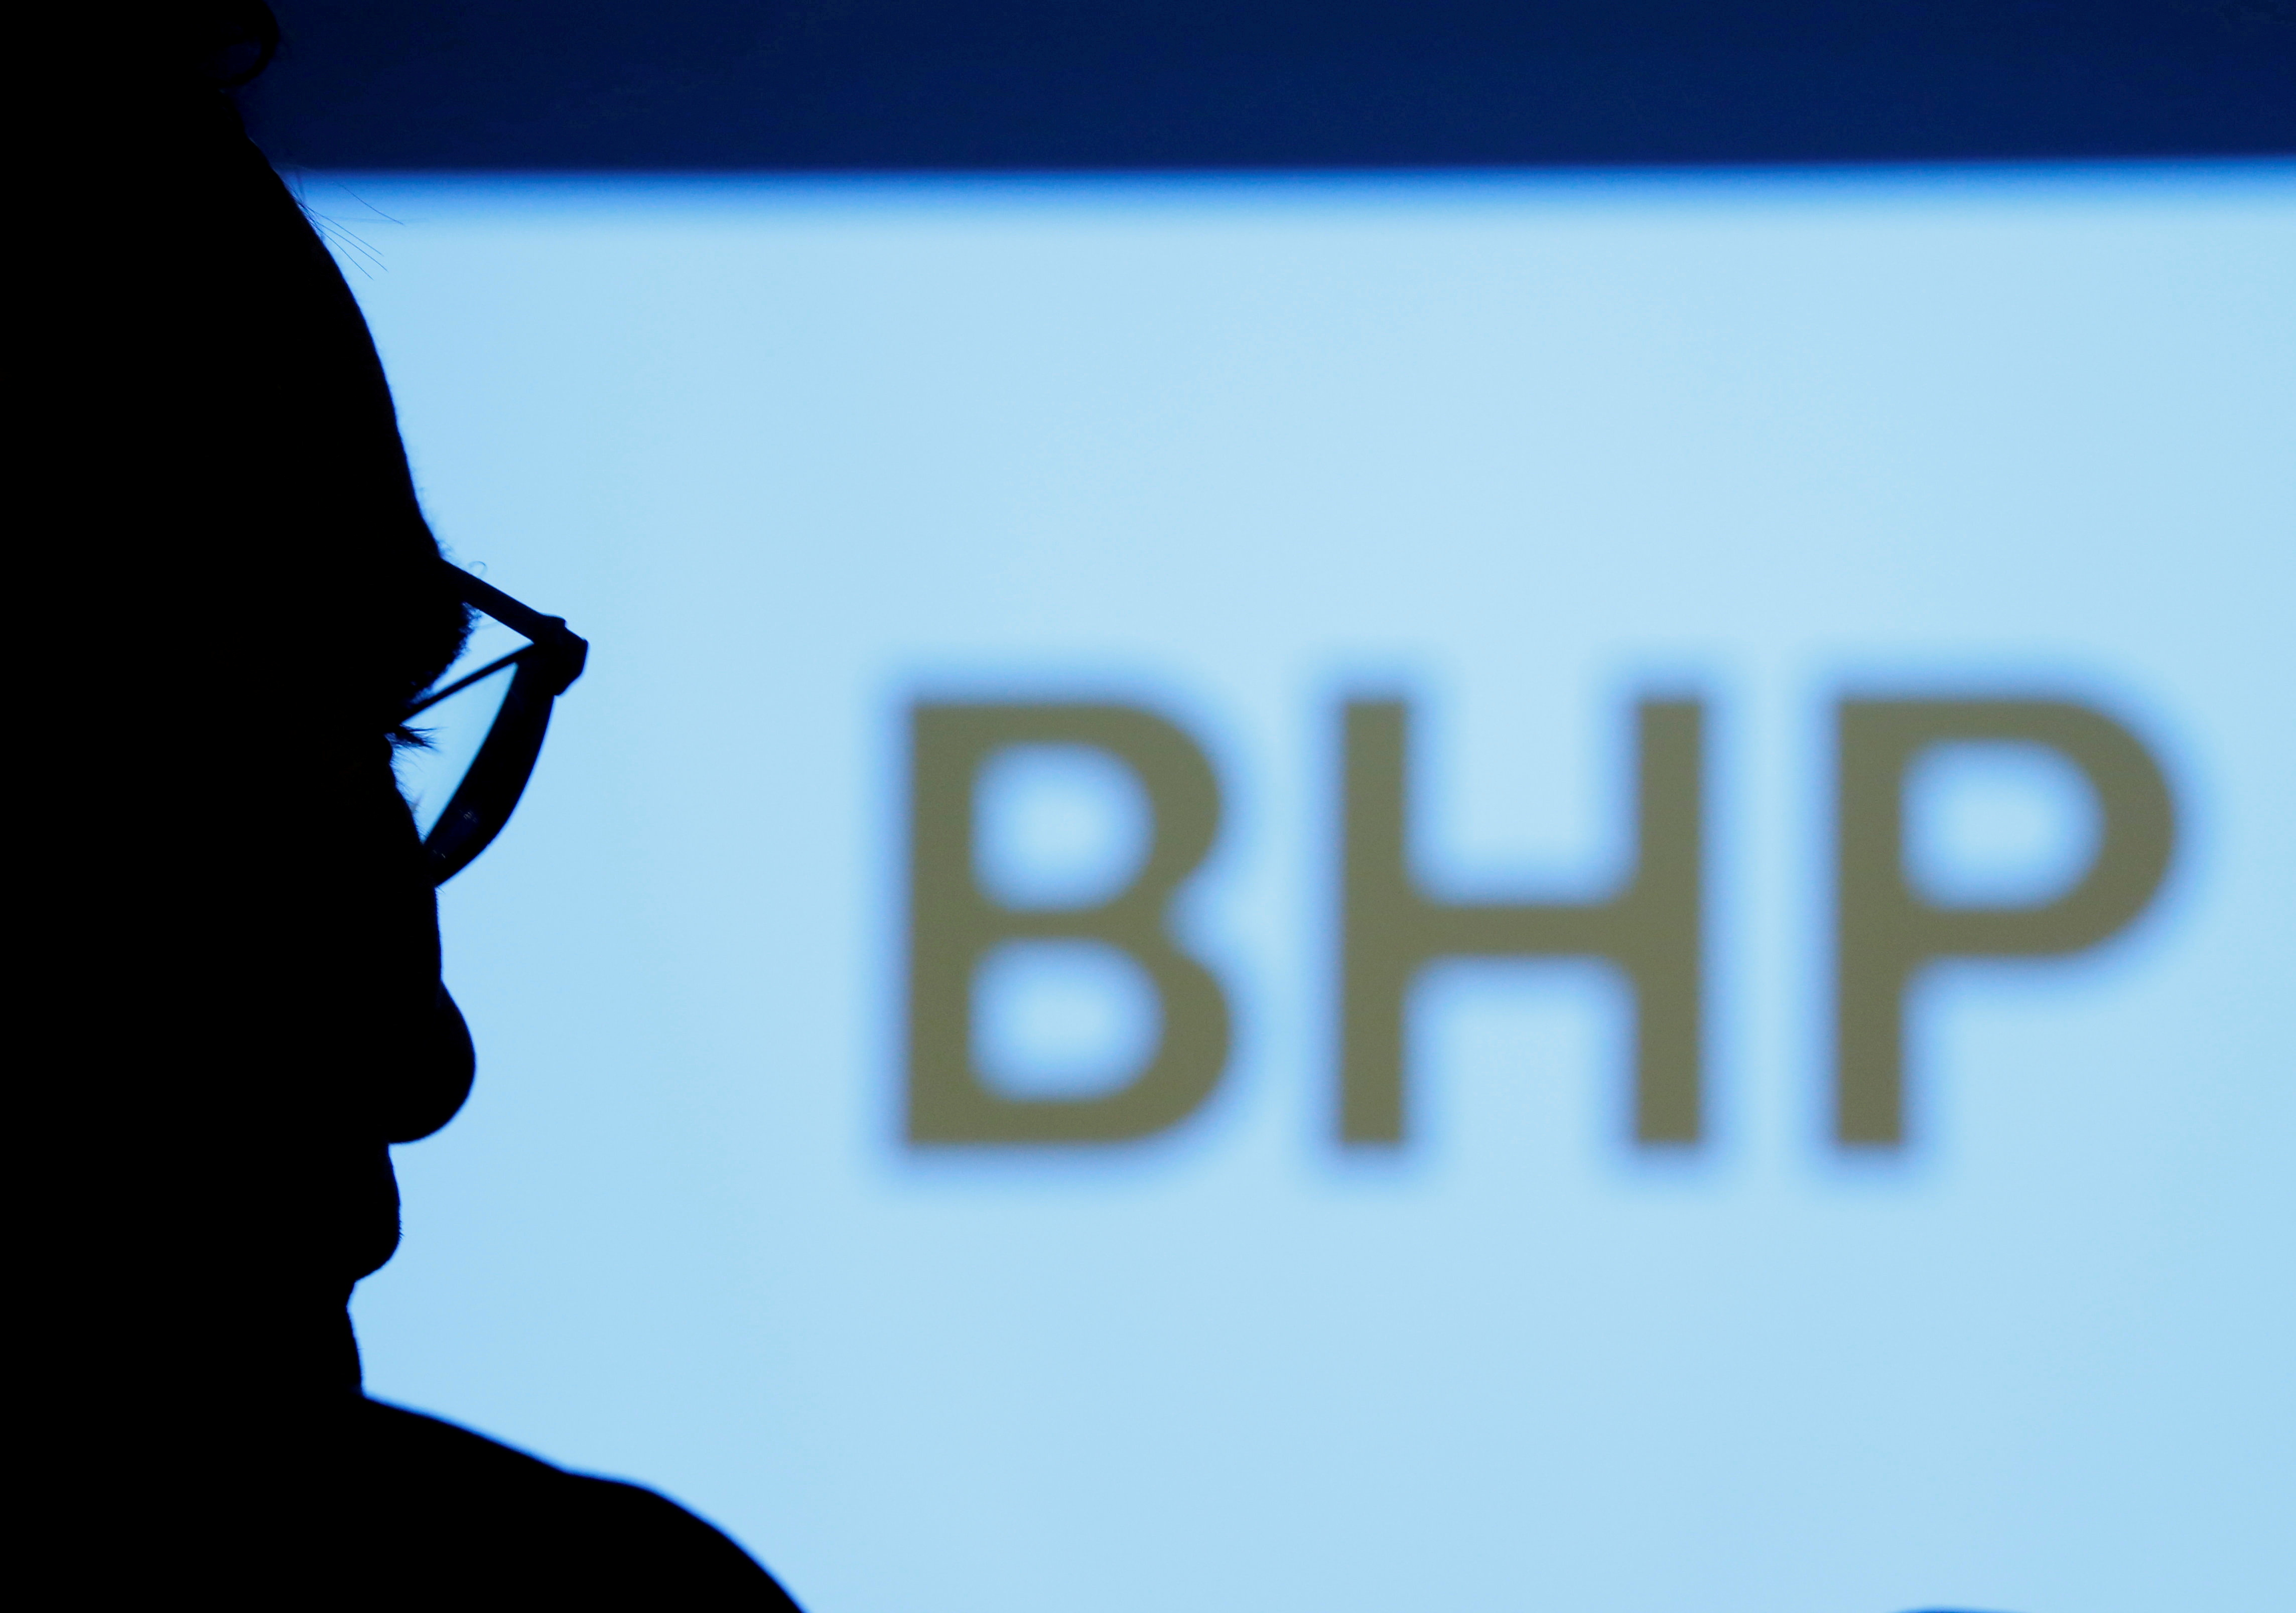 BHP's logo is projected on a screen during a round-table meeting with journalists in Tokyo, Japan, June 5, 2017. REUTERS/Kim Kyung-Hoon